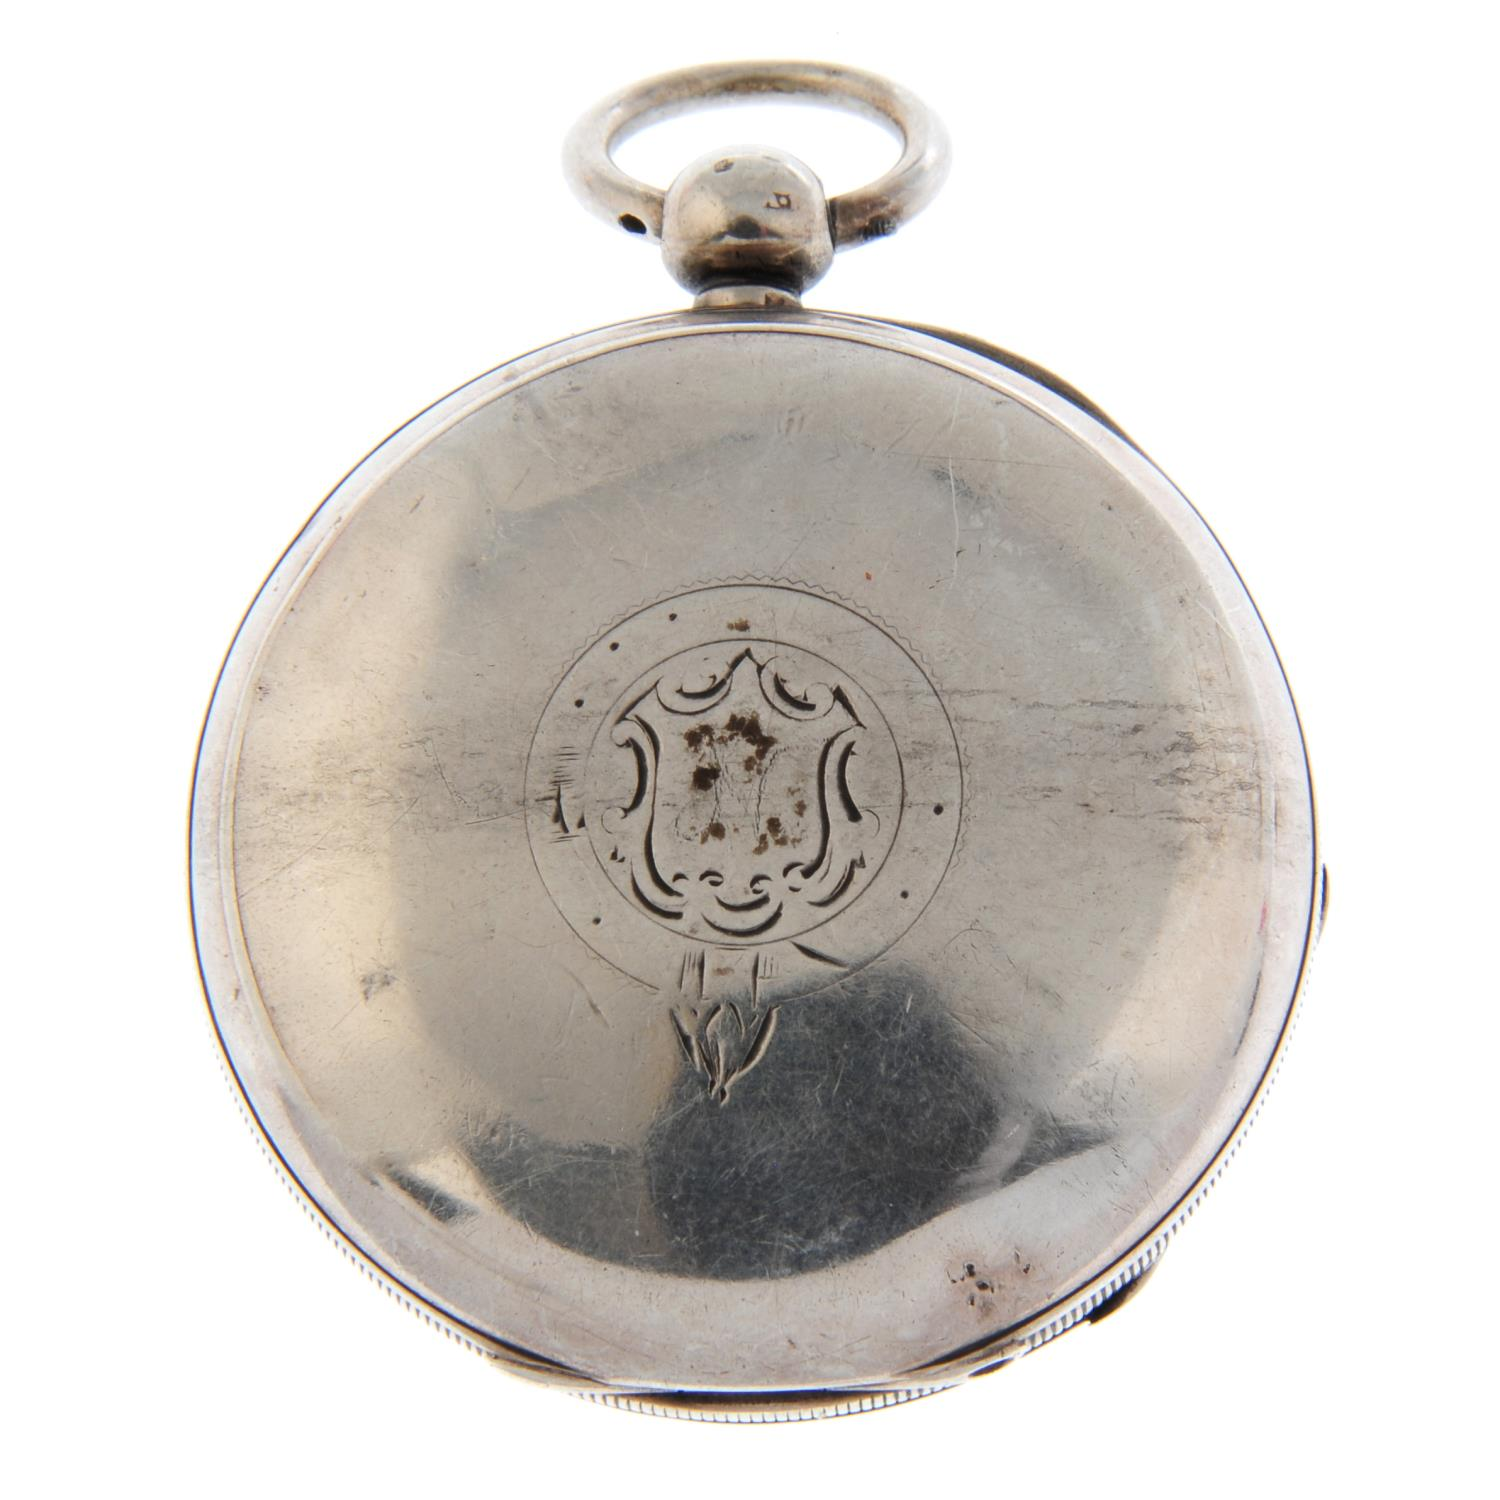 An open face pocket watch by Waltham. - Image 3 of 5